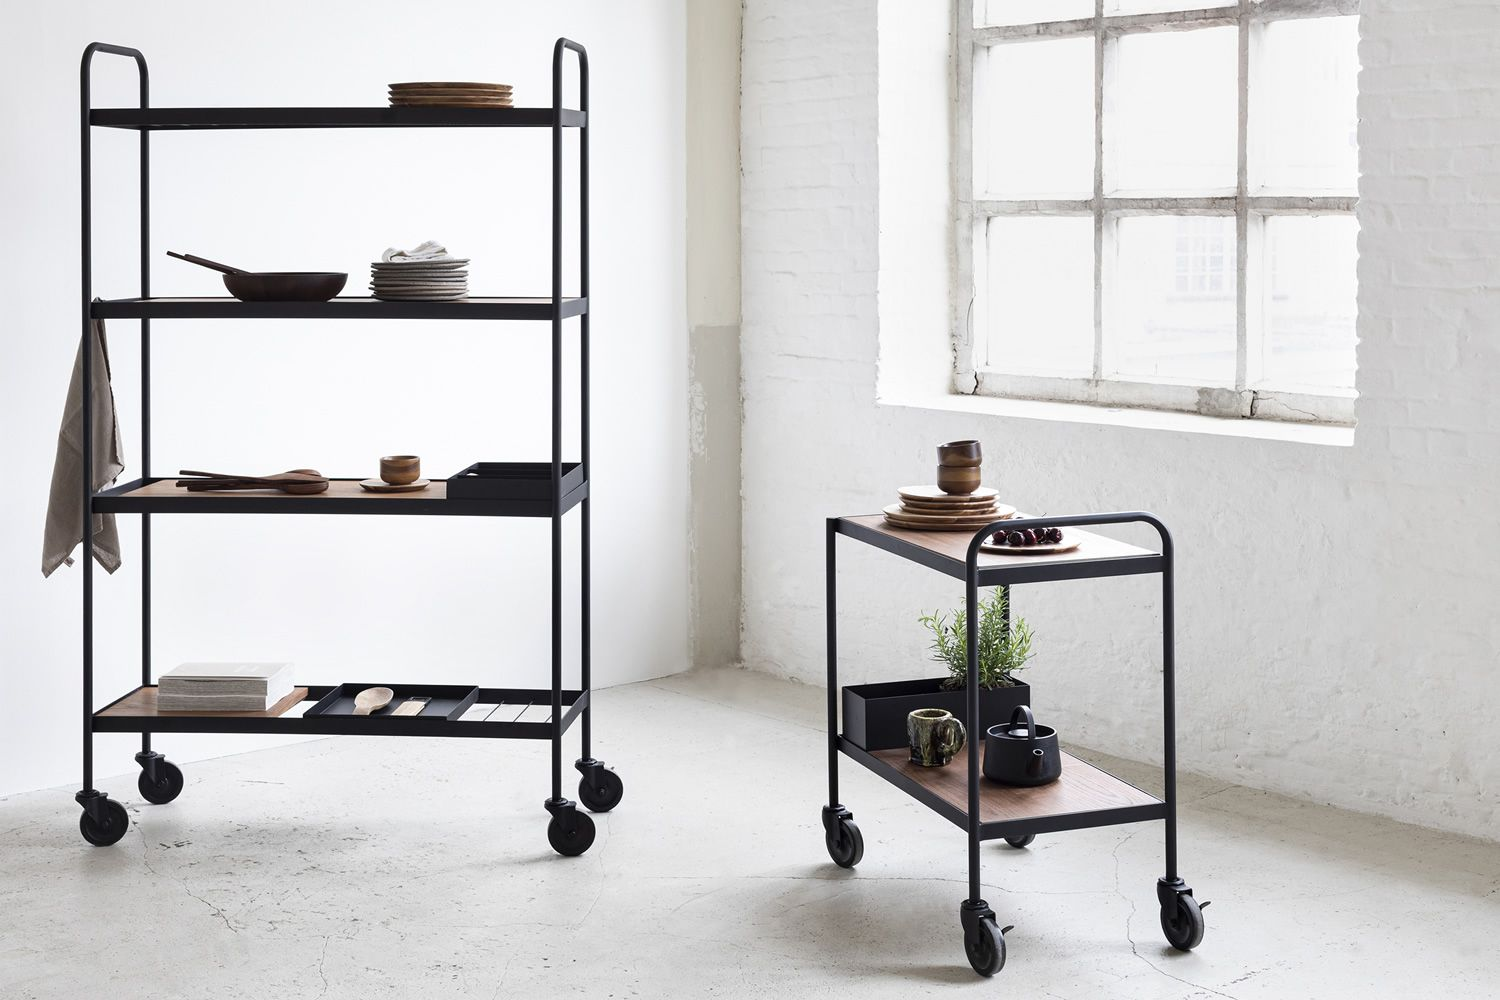 Serax design trolley, in metal with wooden shelves, equipped with wheels